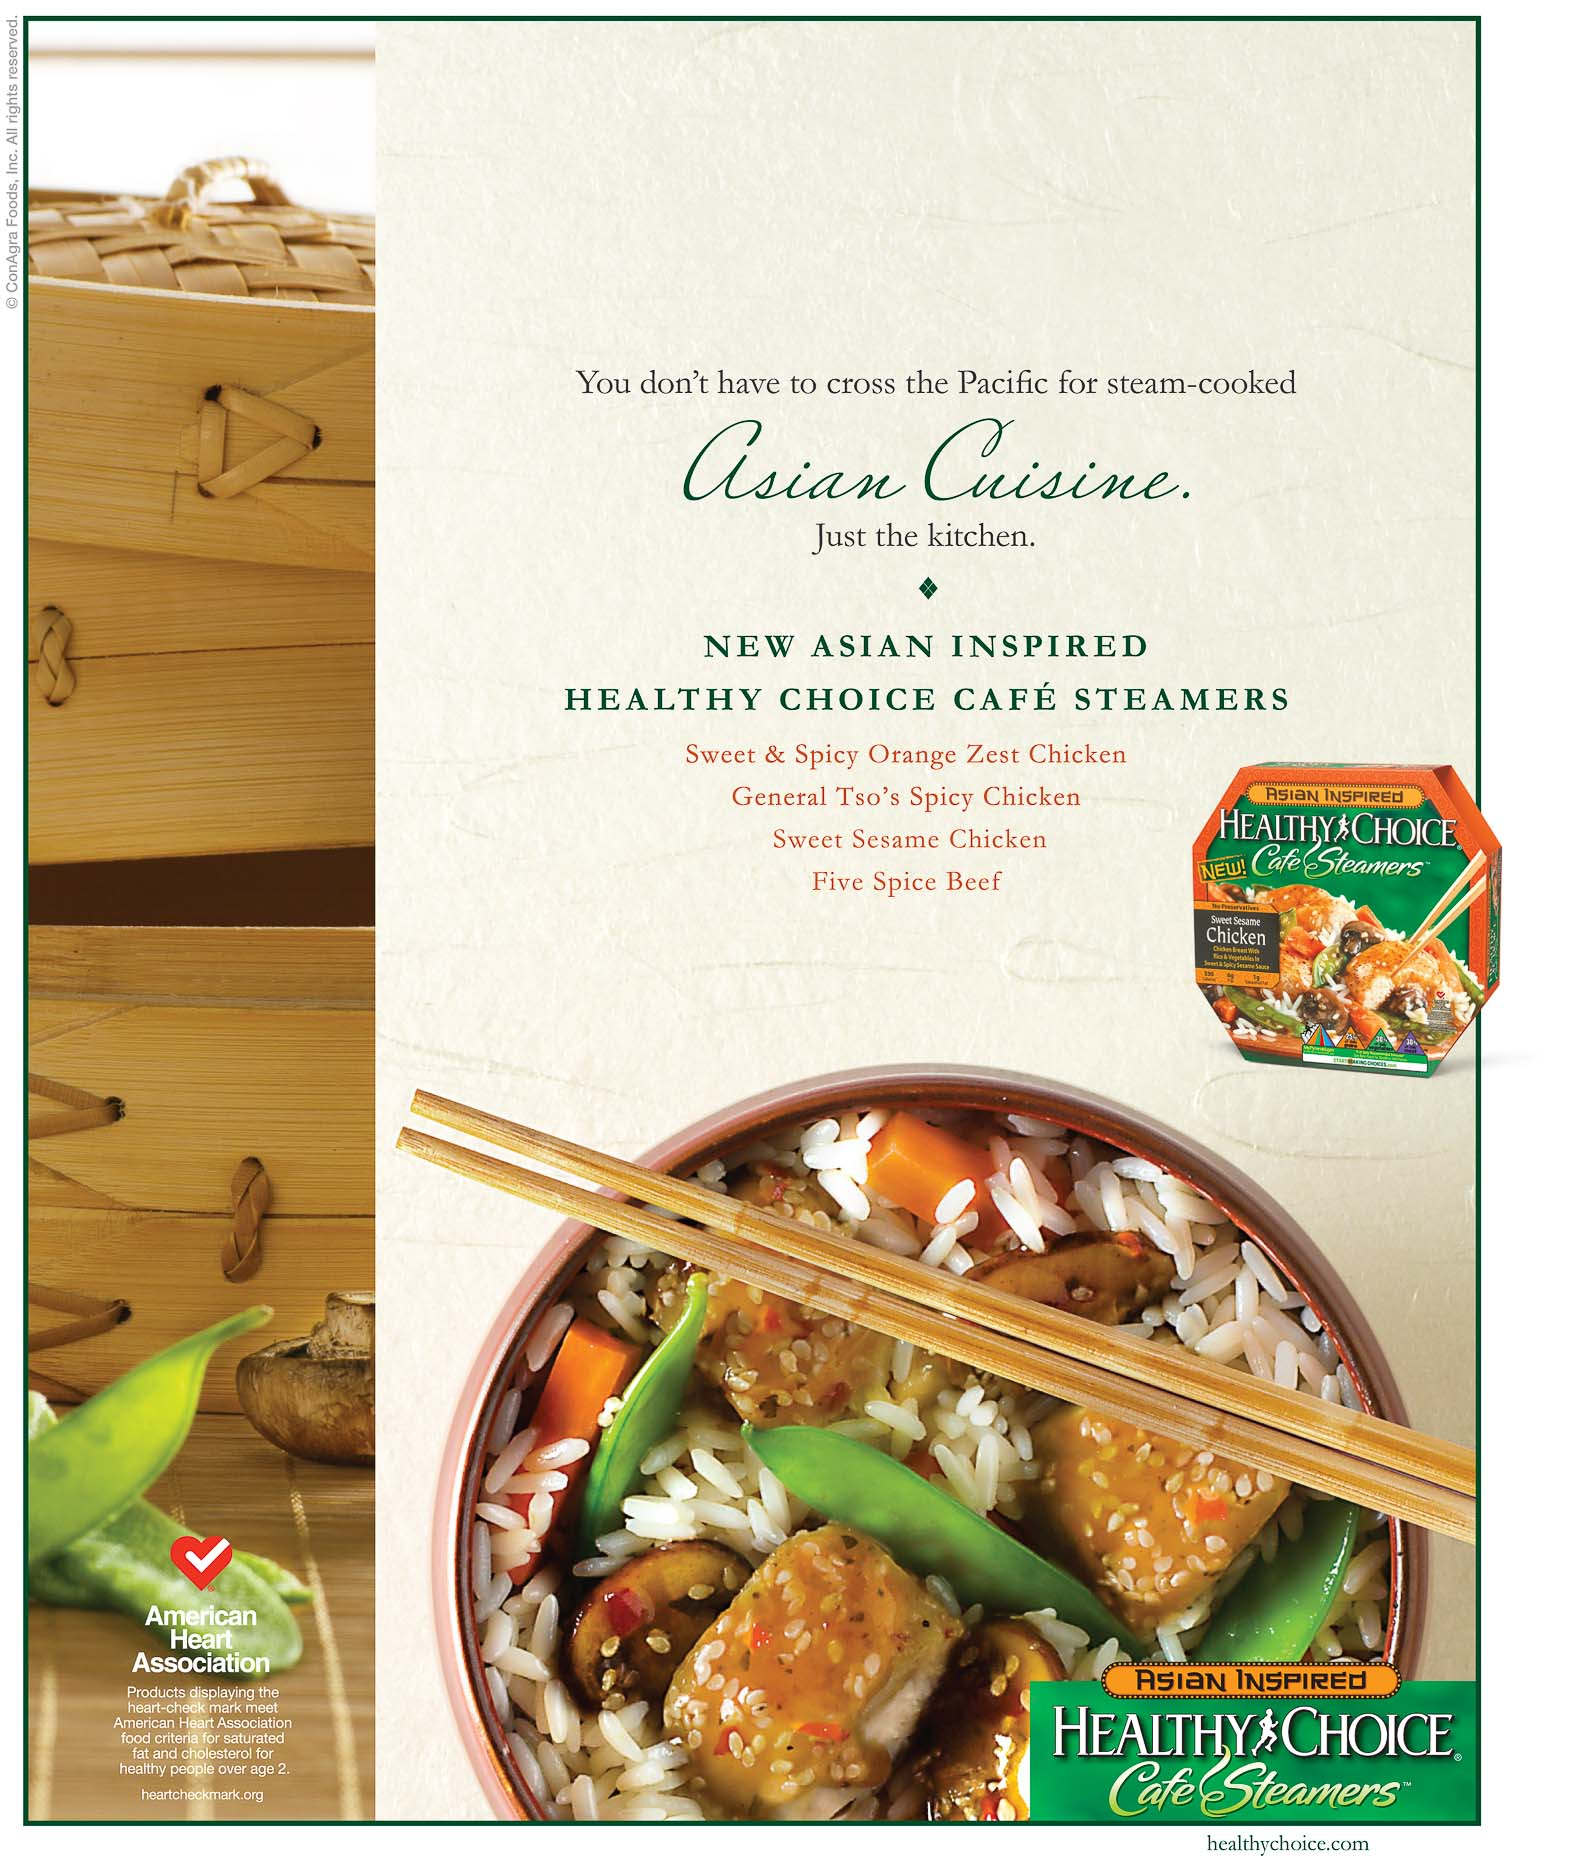 ConAgra - Healthy Choice - Asian Inspired Cafe Steamers - Ad - Nitro